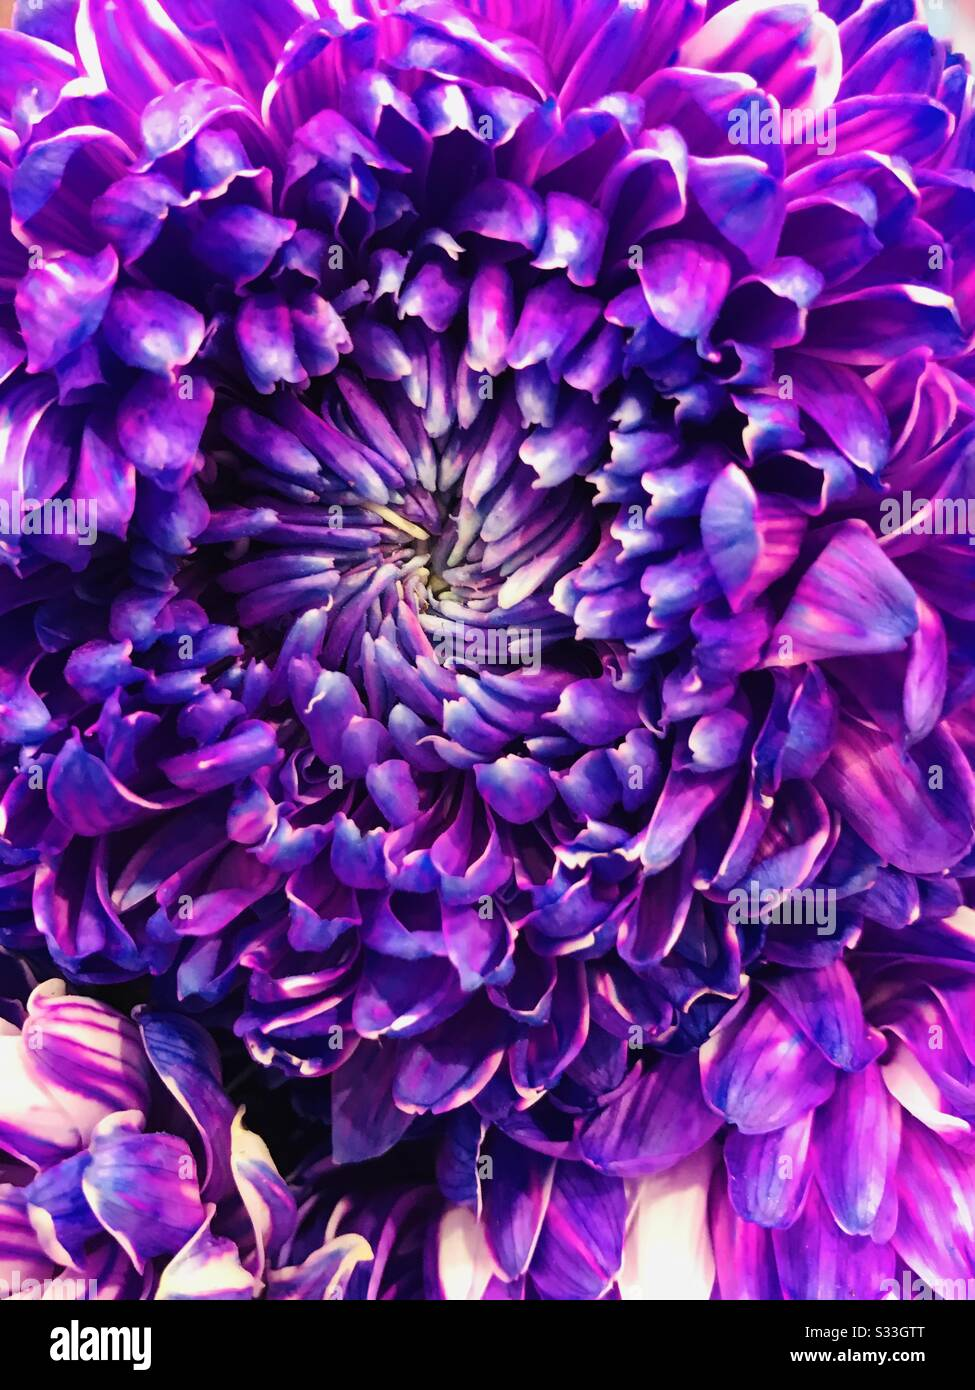 Vibrant Colourful Purple Peacock Coloured Hybrid Chrysanthemum Flower Embroidery Pattern Flower Like Glass Painting Close Up Pic Purple Flower Violet Flower Stock Photo Alamy